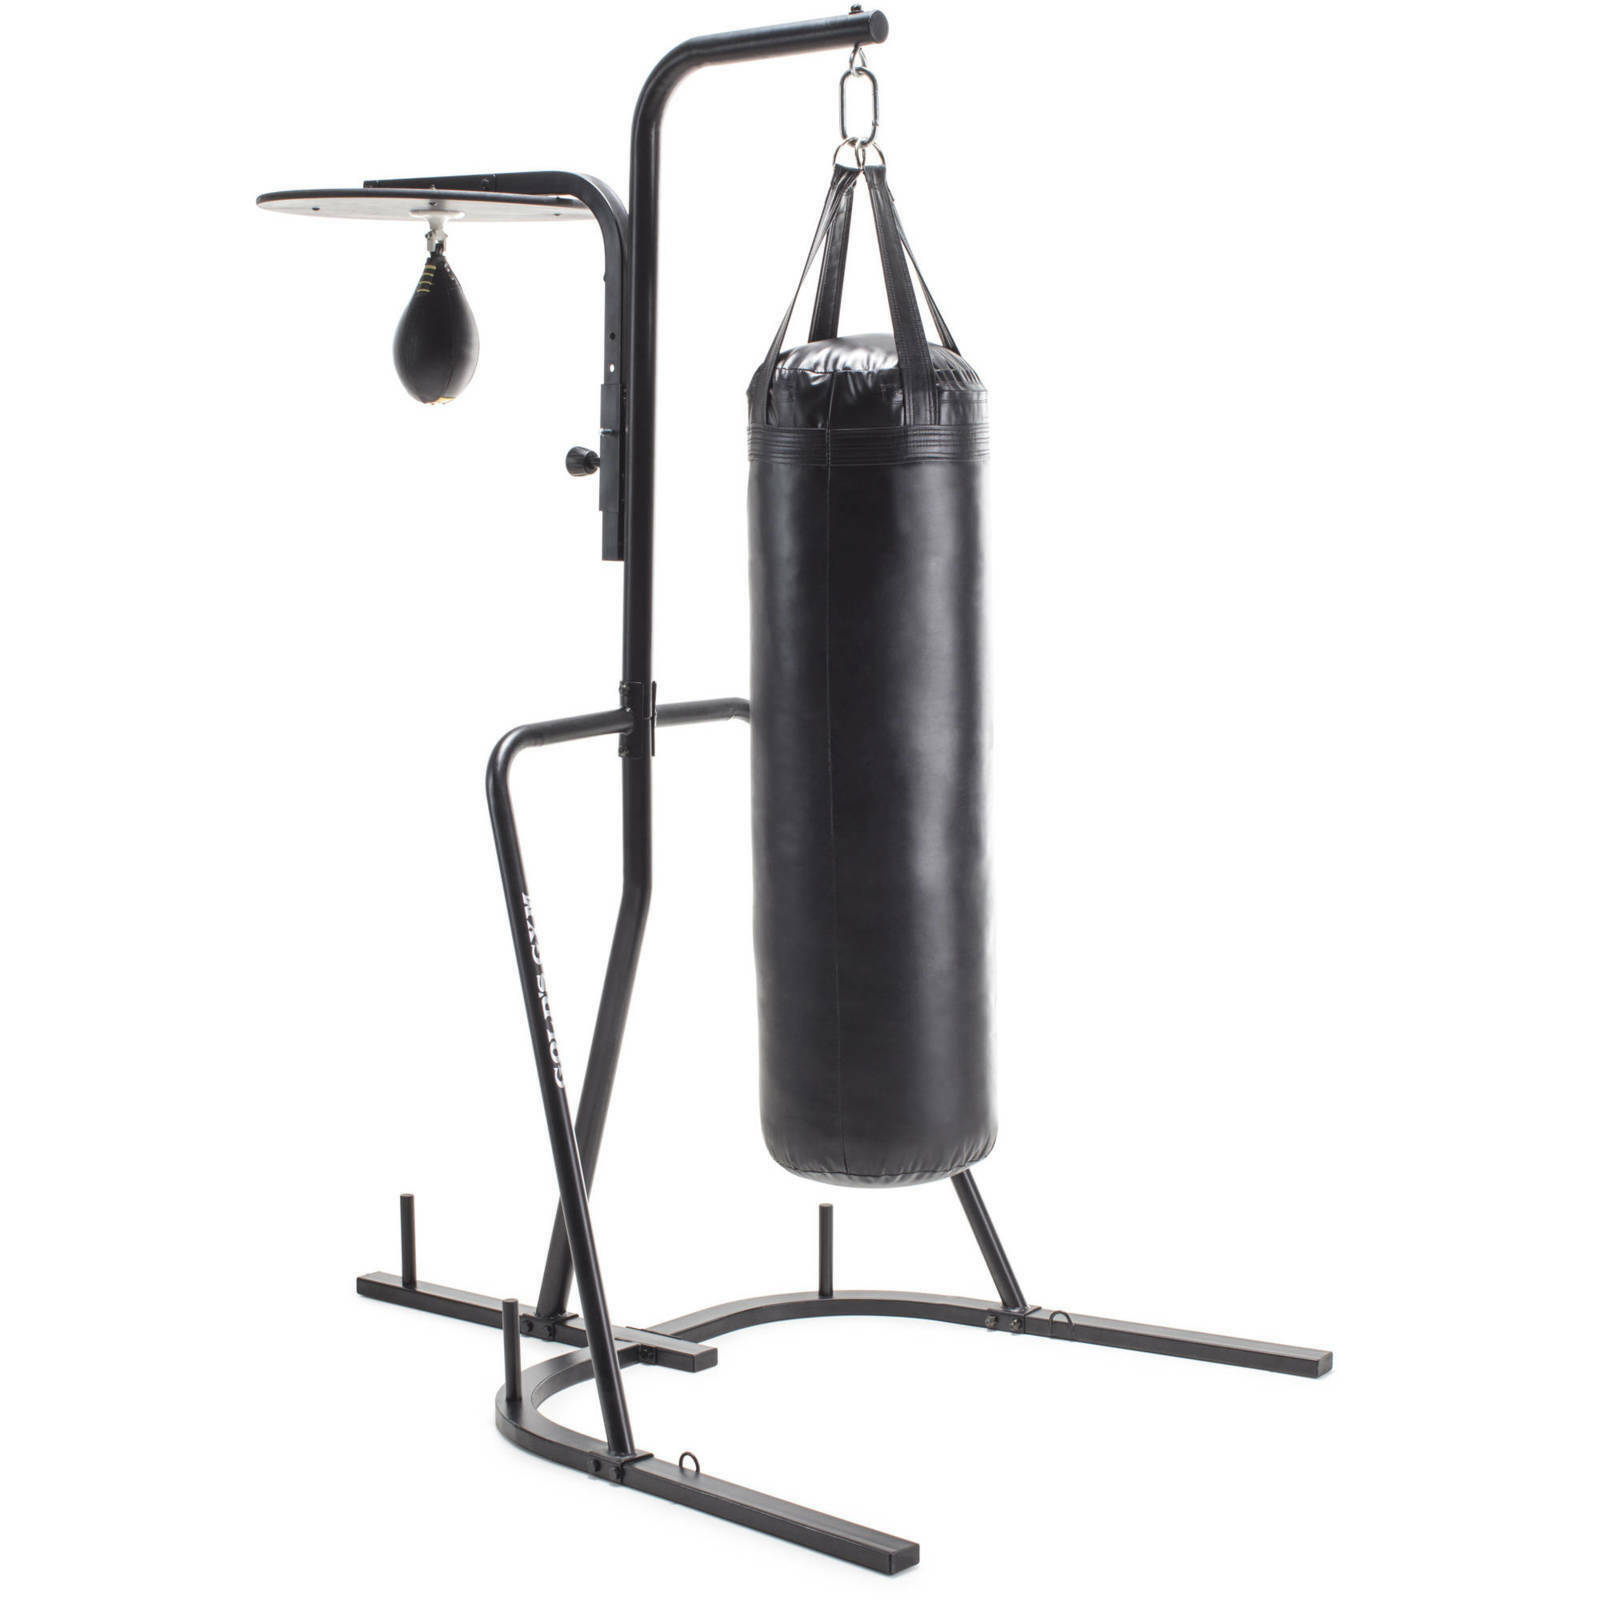 gold's Gym Dual Station Heavy Bag Boxing Stand Boxing Training  Pun ng MMA New  online outlet sale